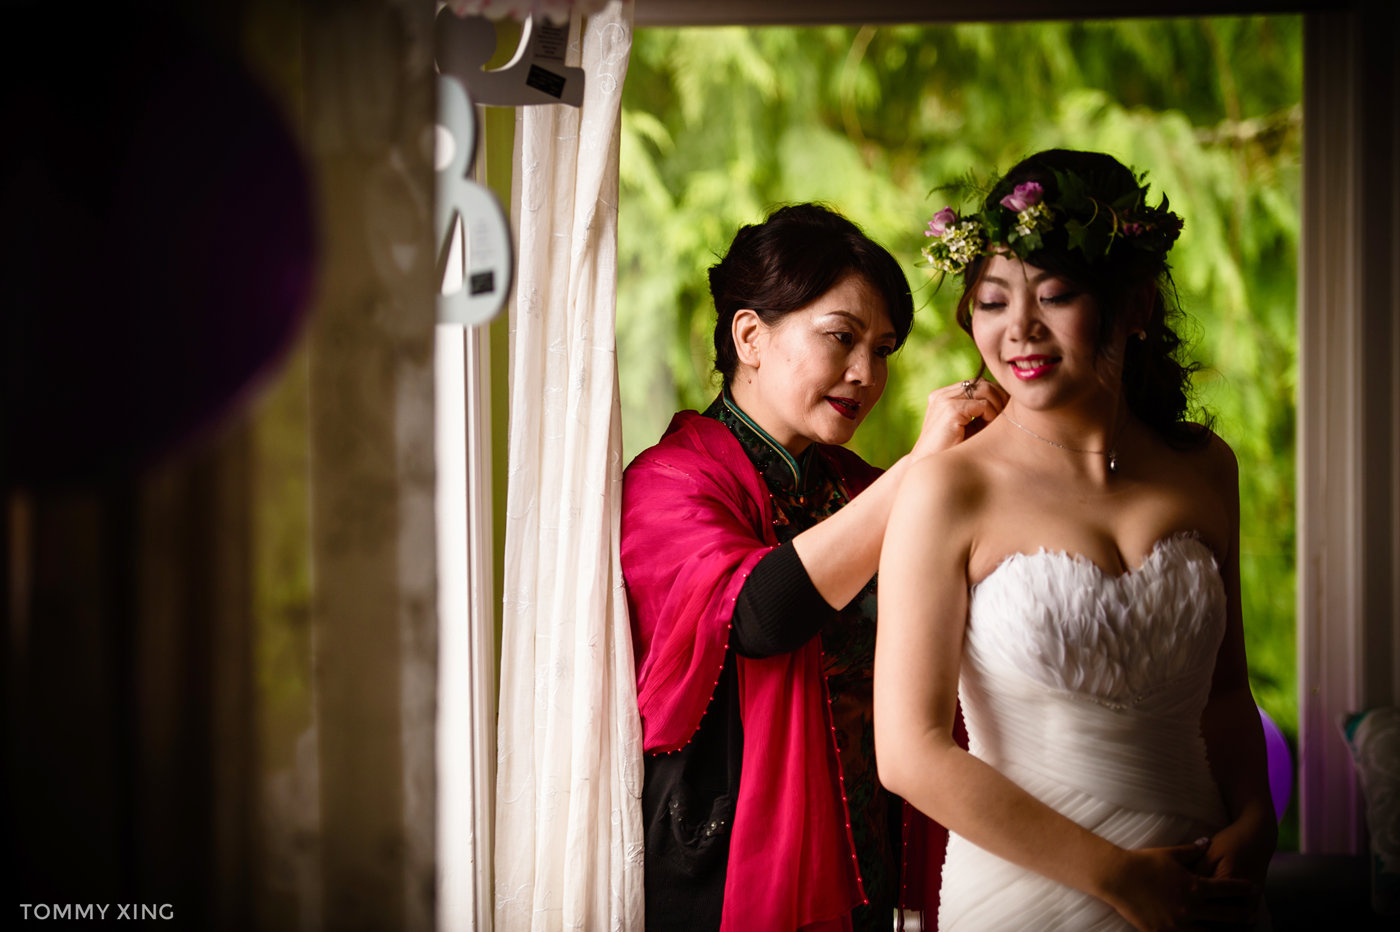 Seattle Wedding and pre wedding Los Angeles Tommy Xing Photography 西雅图洛杉矶旧金山婚礼婚纱照摄影师 032.jpg